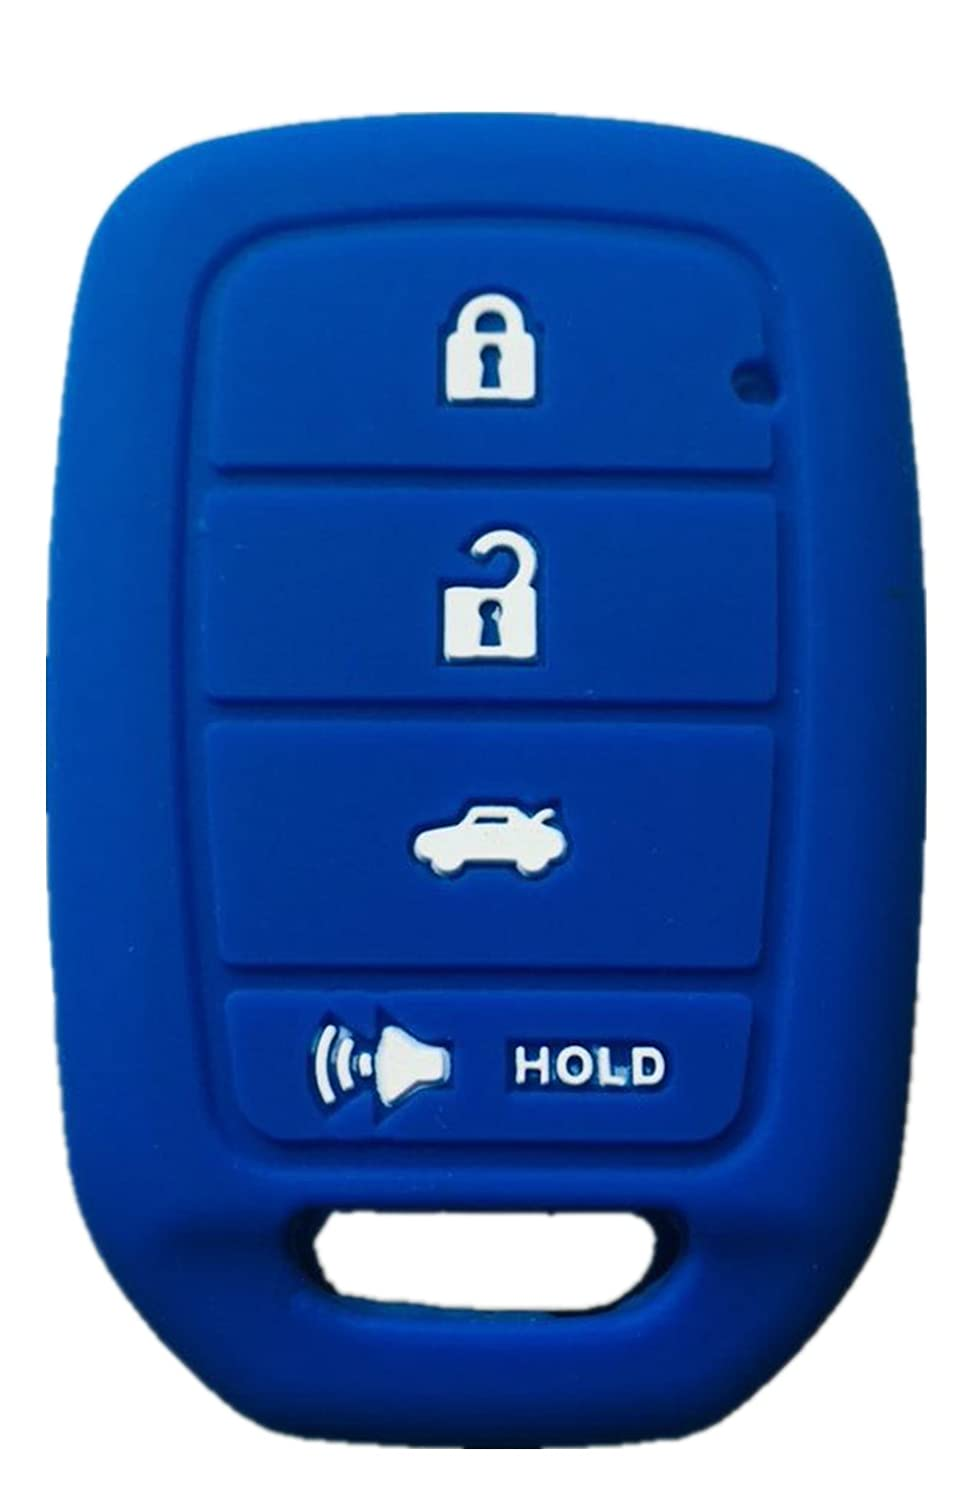 Rpkey Silicone Keyless Entry Remote Control Key Fob Cover Case protector For 2013 2014 2015 Honda Accord Civic MLBHLIK6-1T 35118-T2A-A20 ASD